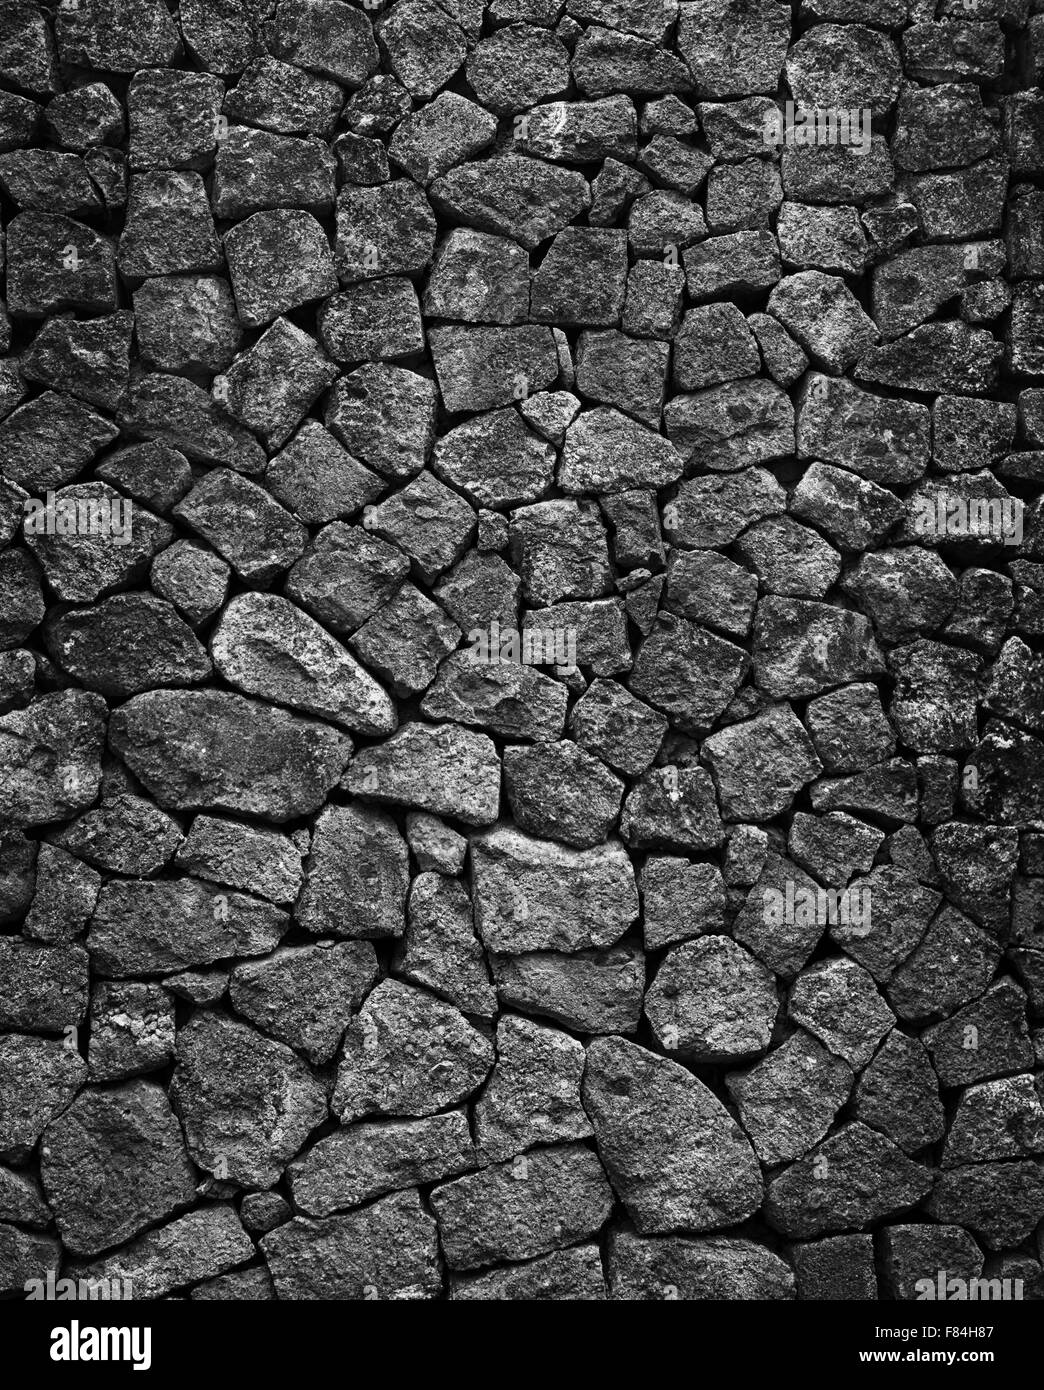 Mosiac hand crafted gray solid granite stone wall background. - Stock Image